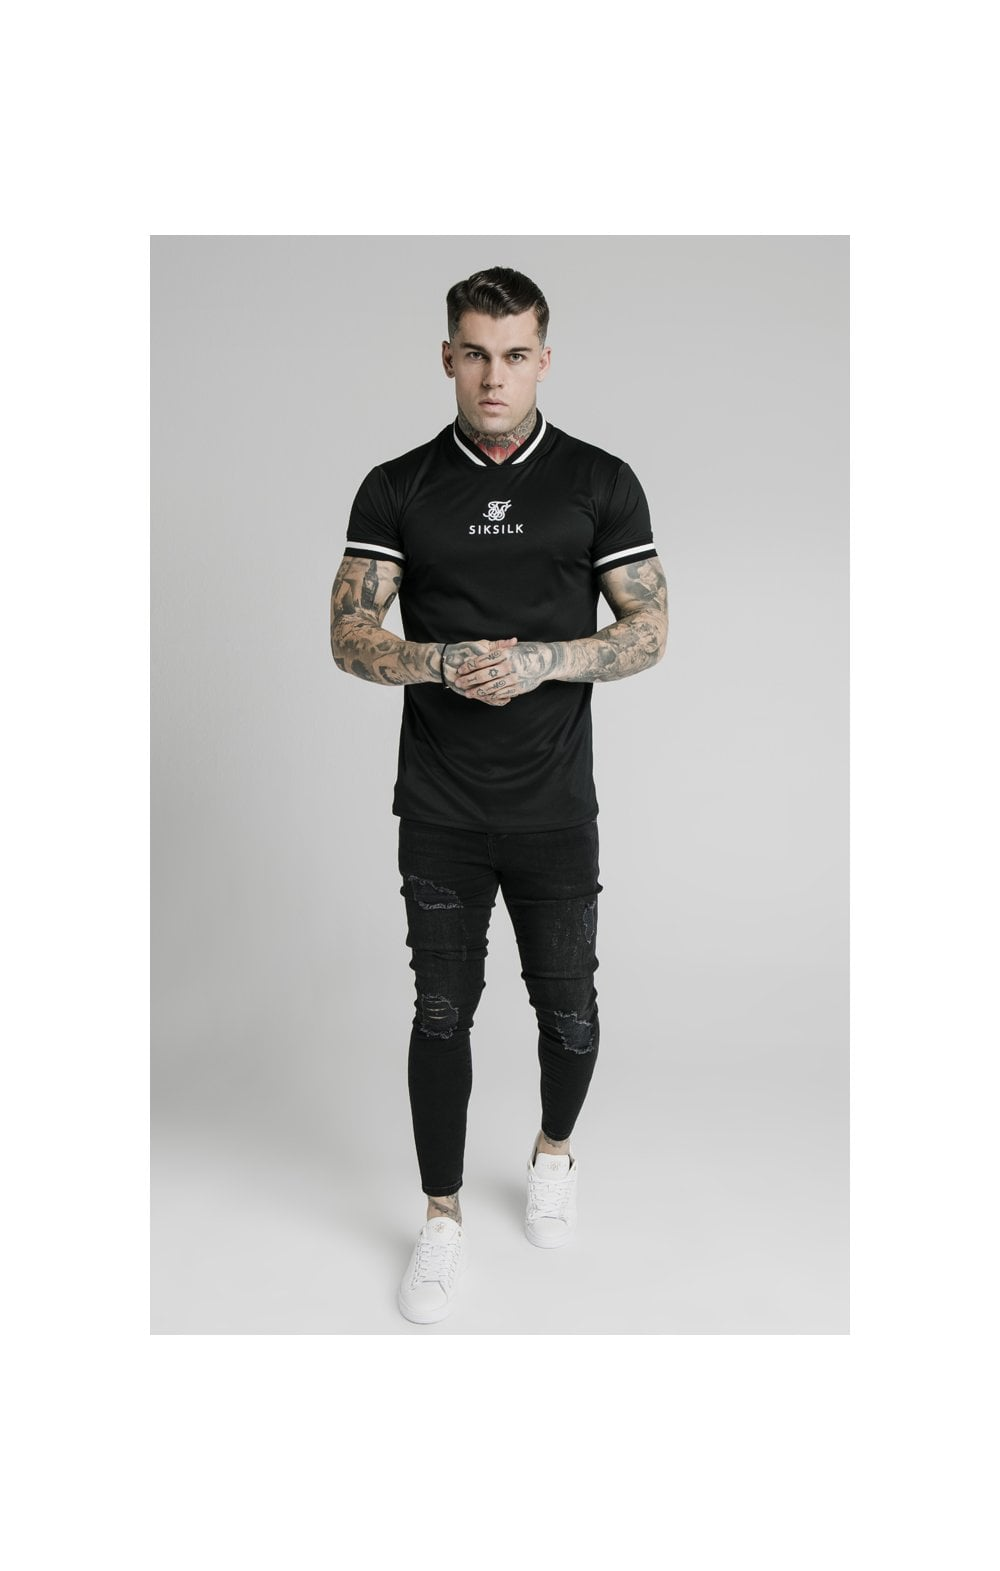 SikSilk S/S Poly Rib Collar Tee - Black (3)